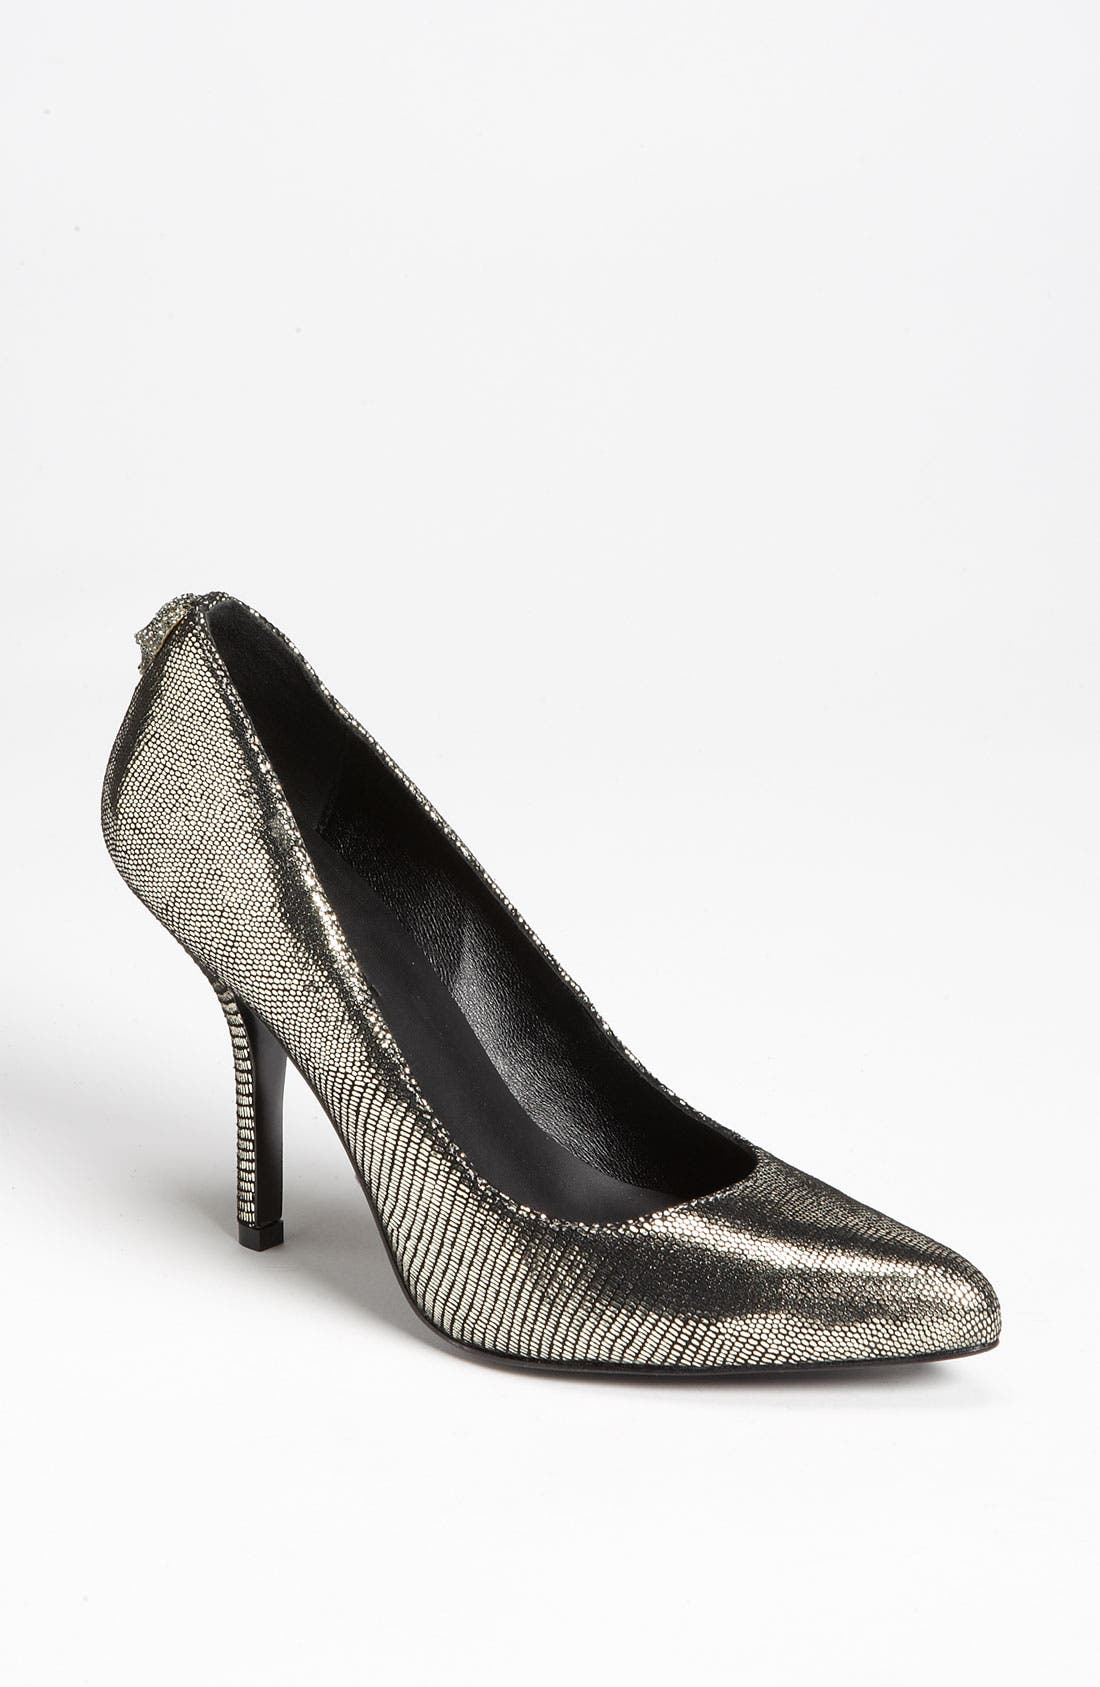 Alternate Image 1 Selected - Zadig & Voltaire 'Stellato' Pump